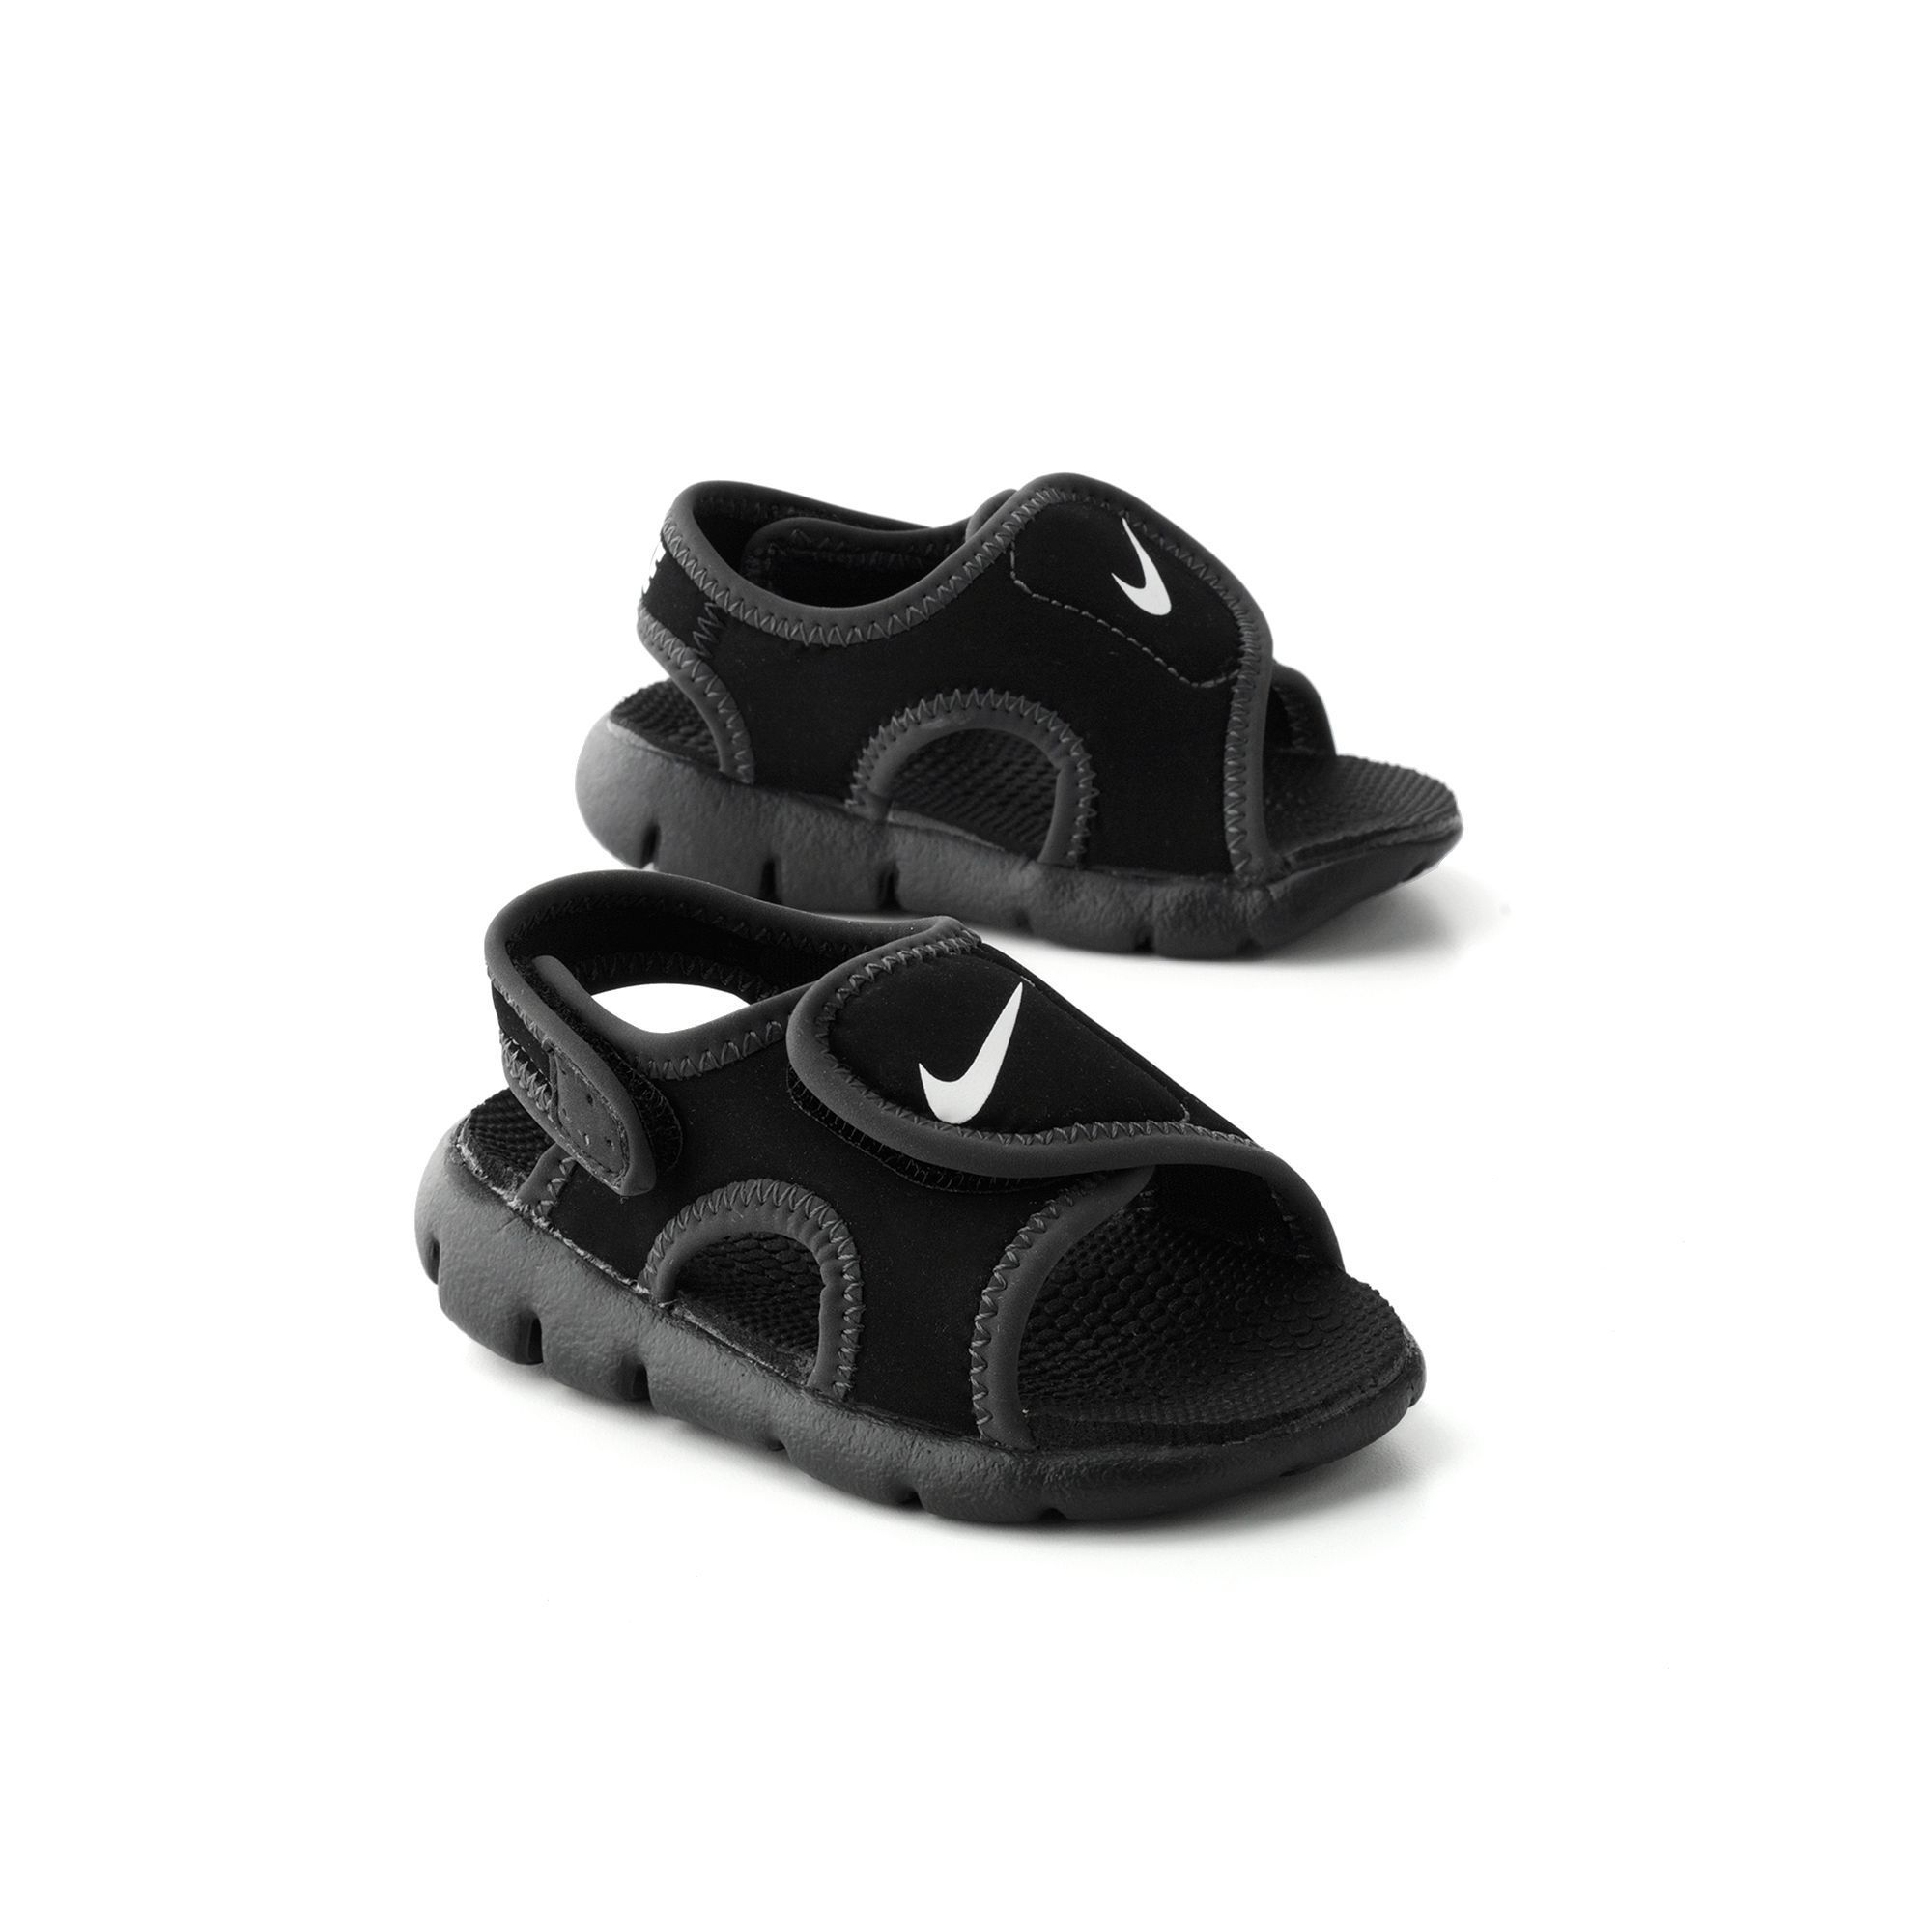 f4d6e7169 Nike Sunray Adjust 4 Toddler Boys  Sandals